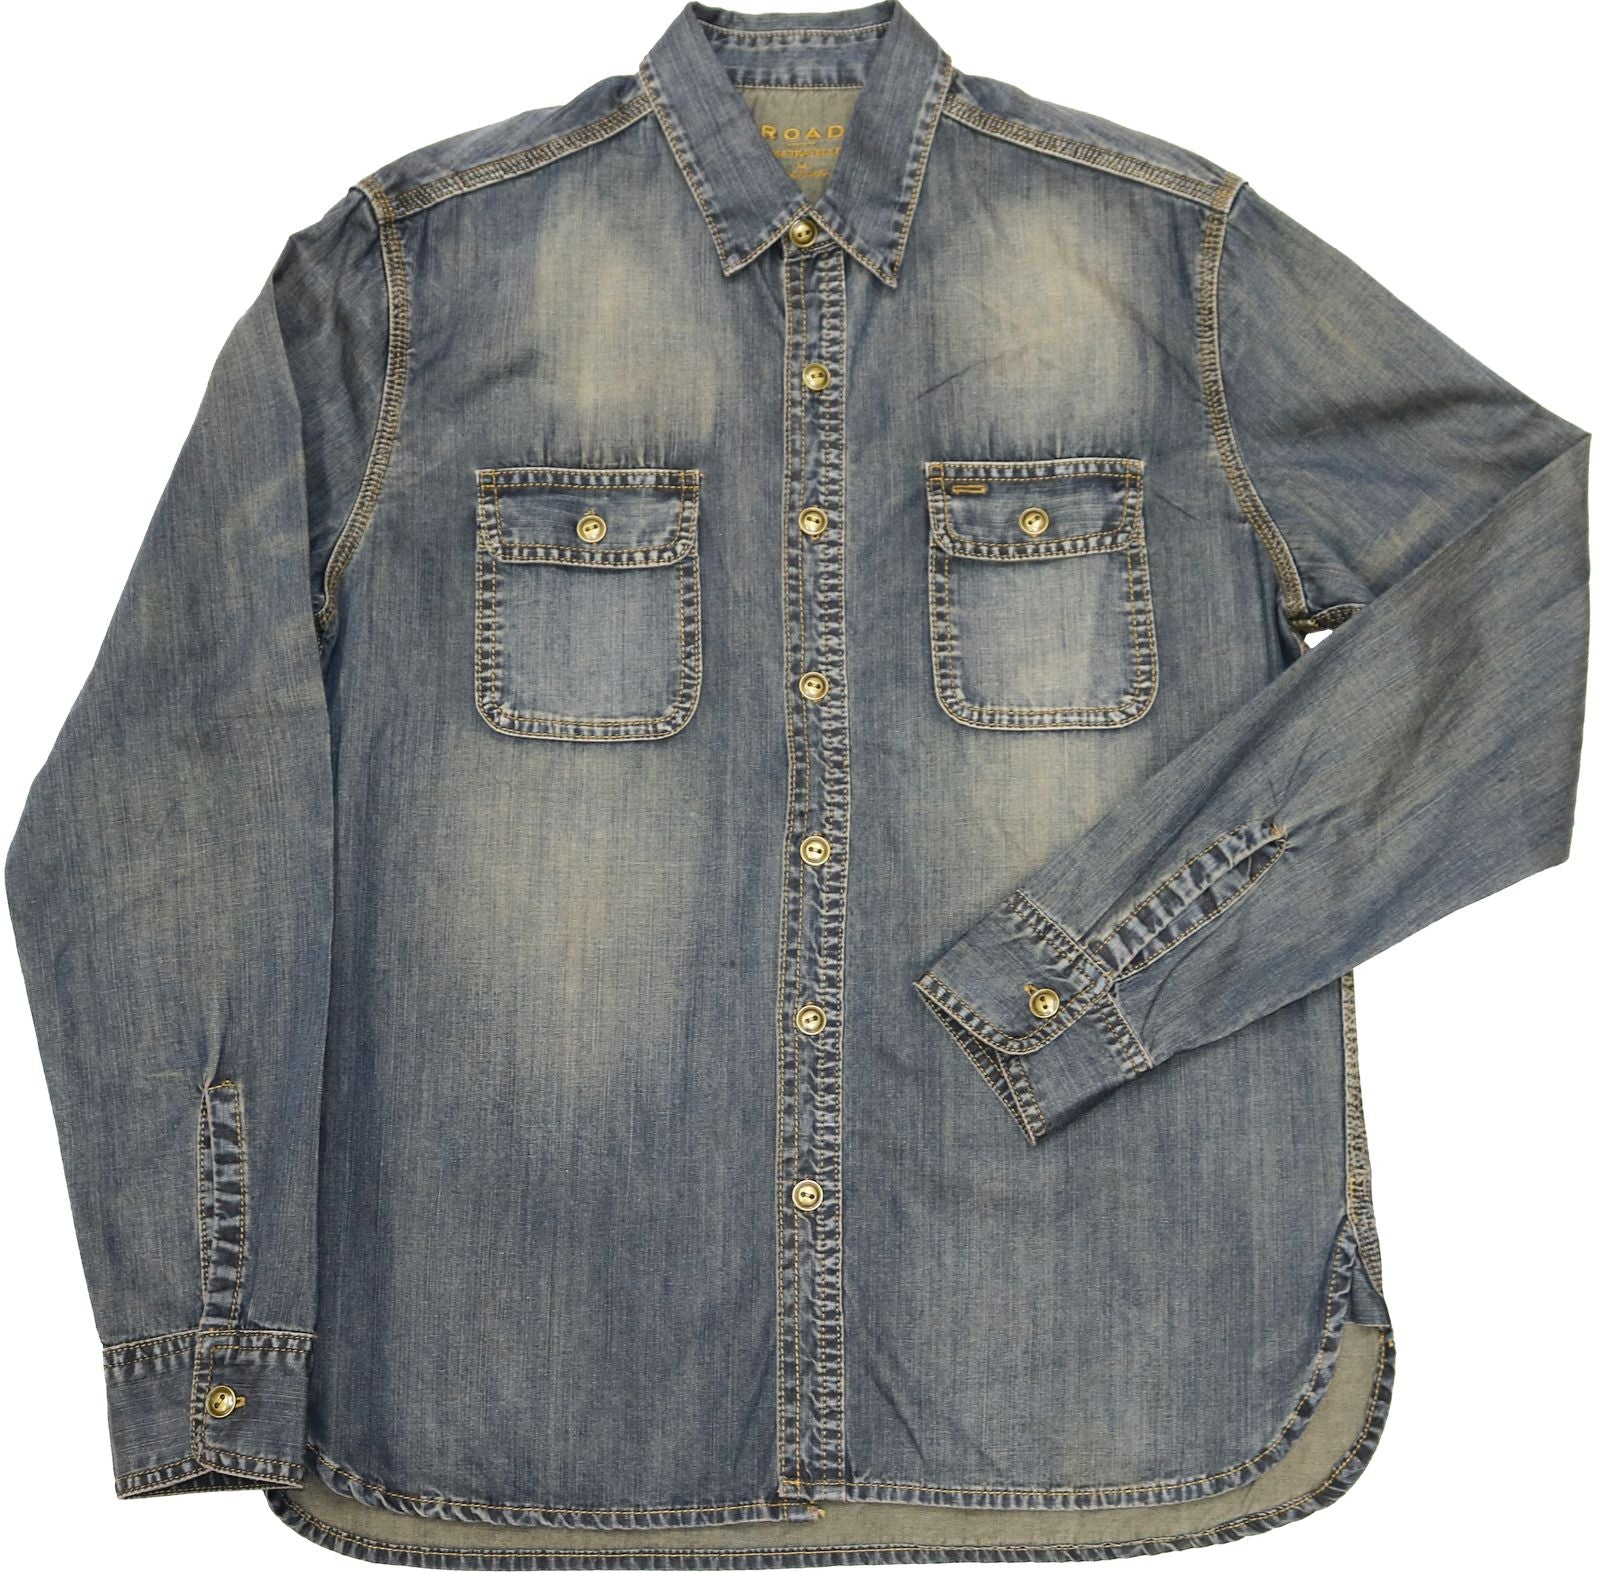 Ale - Cotton Slub Denim Long-Sleeve Shirt